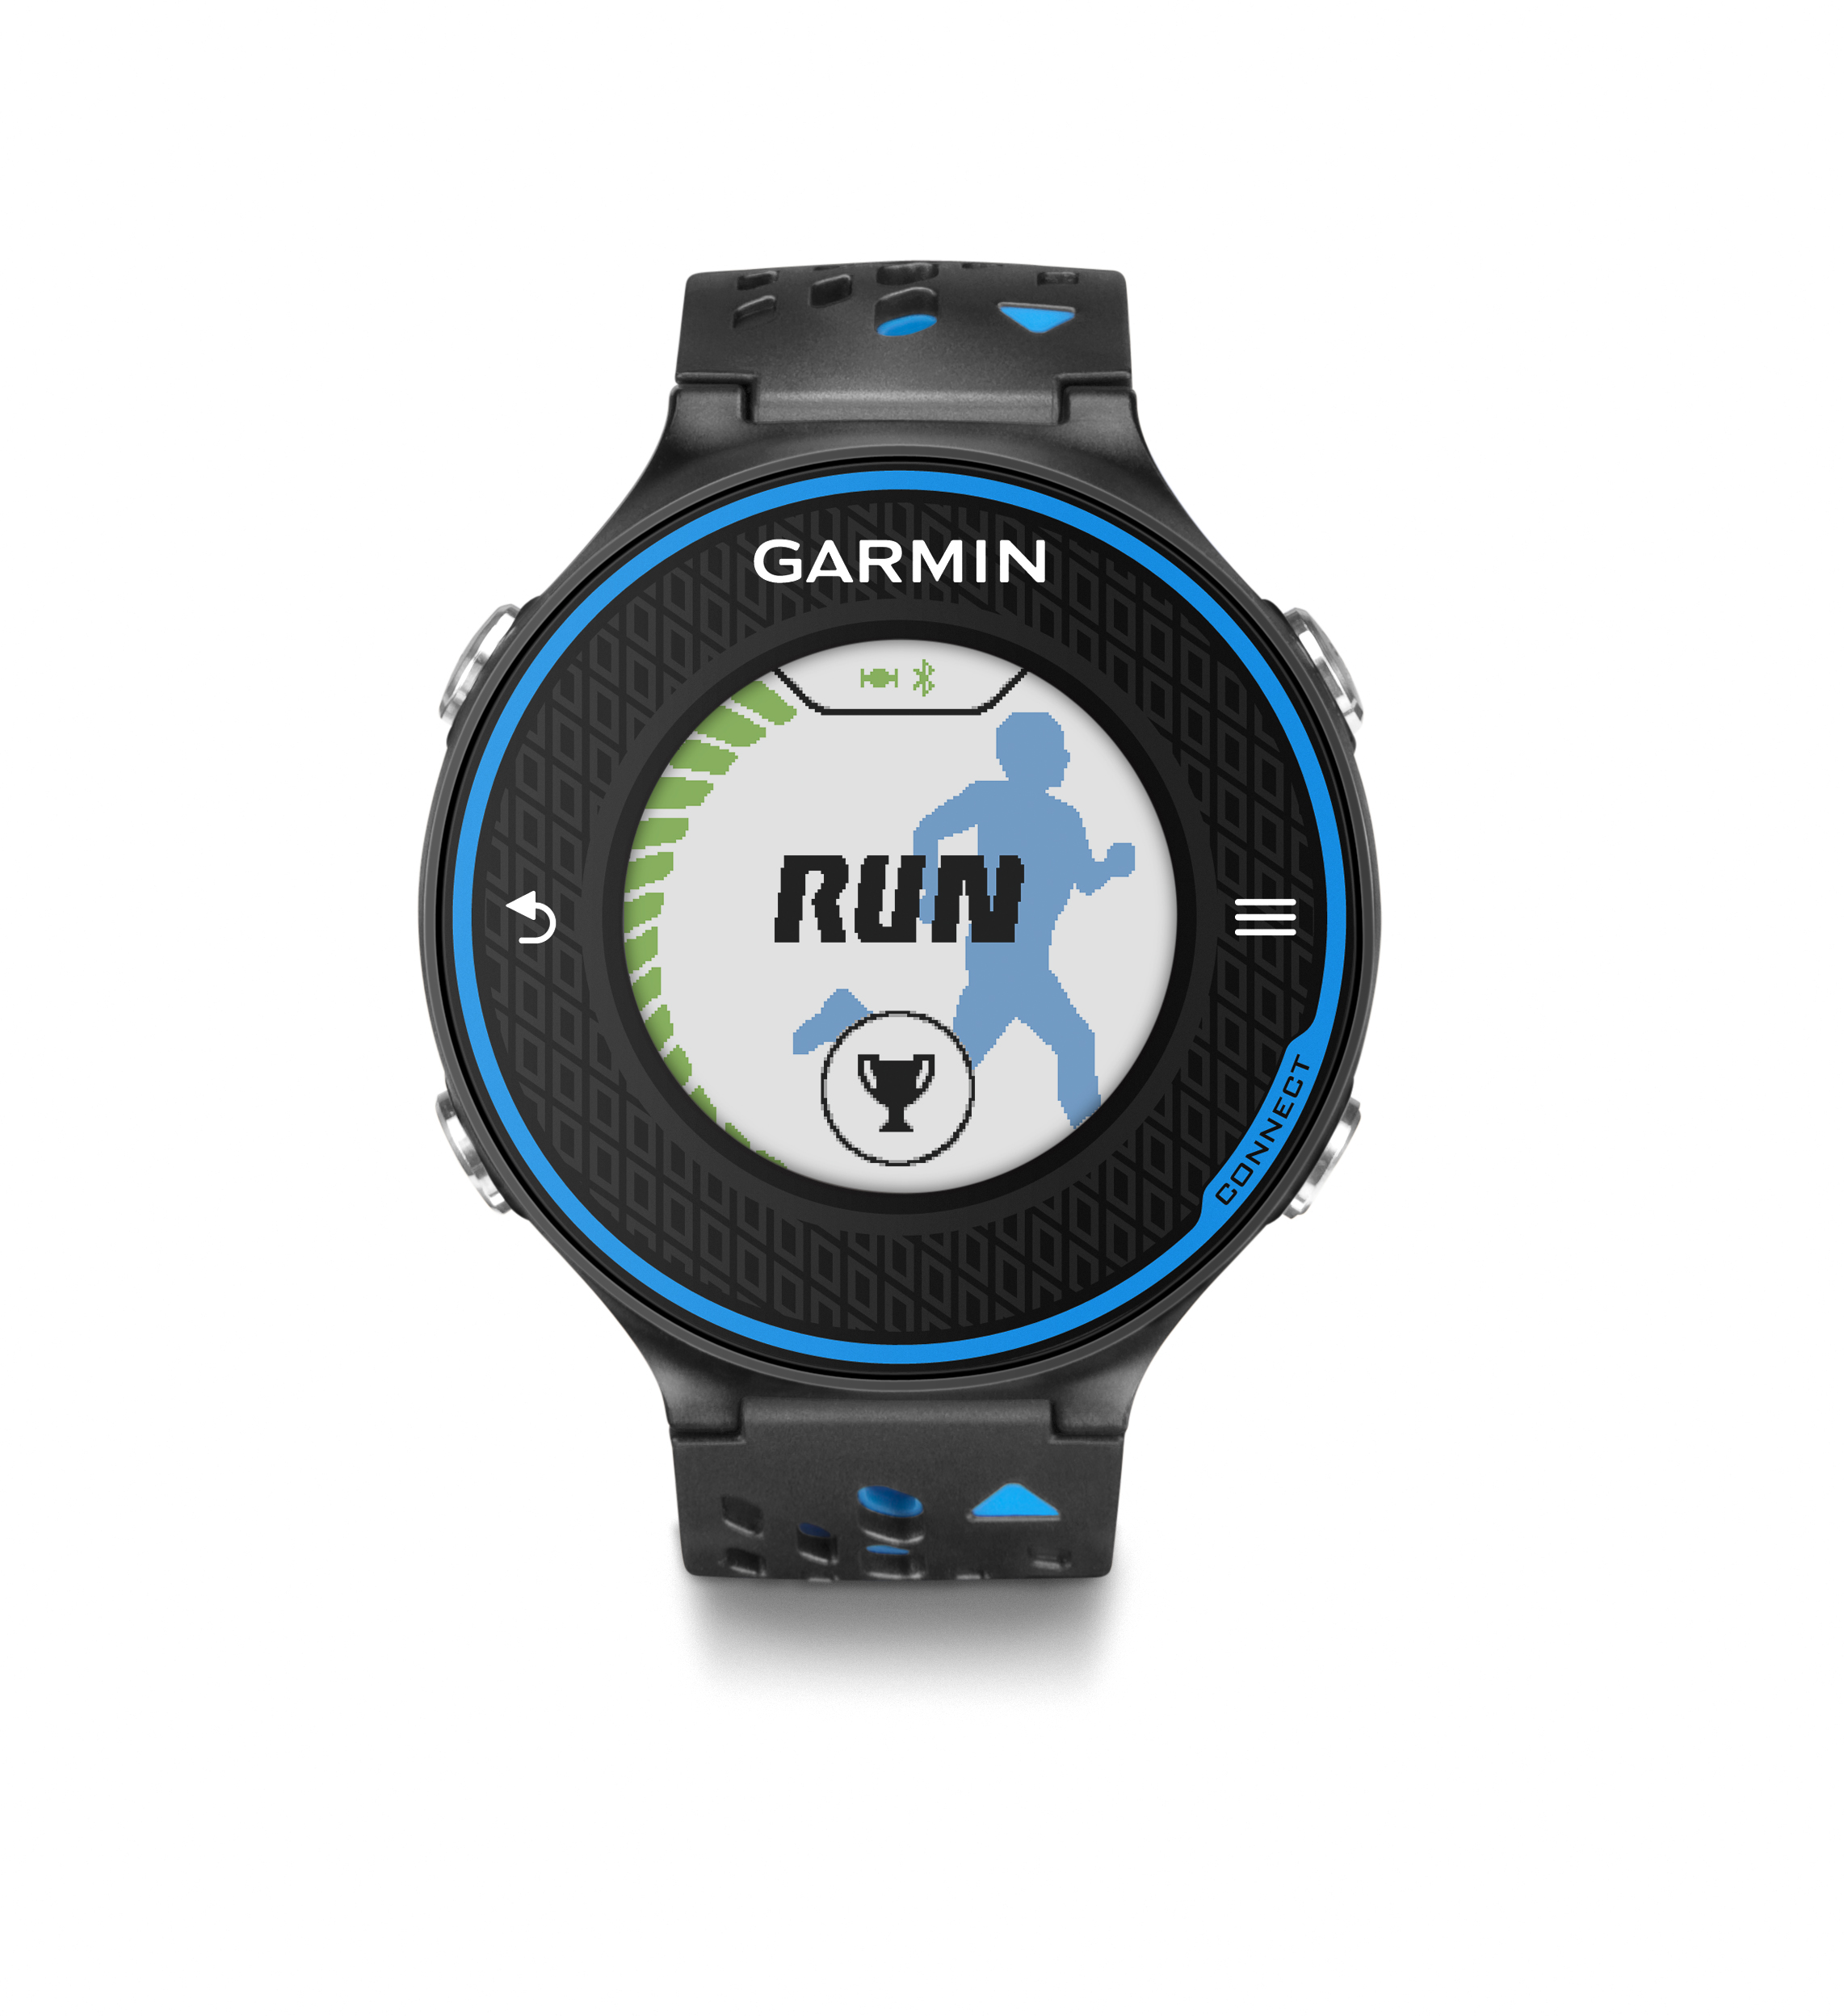 http://static.garmincdn.com/en/products/010-01128-00/g/mg-01-lg.jpg